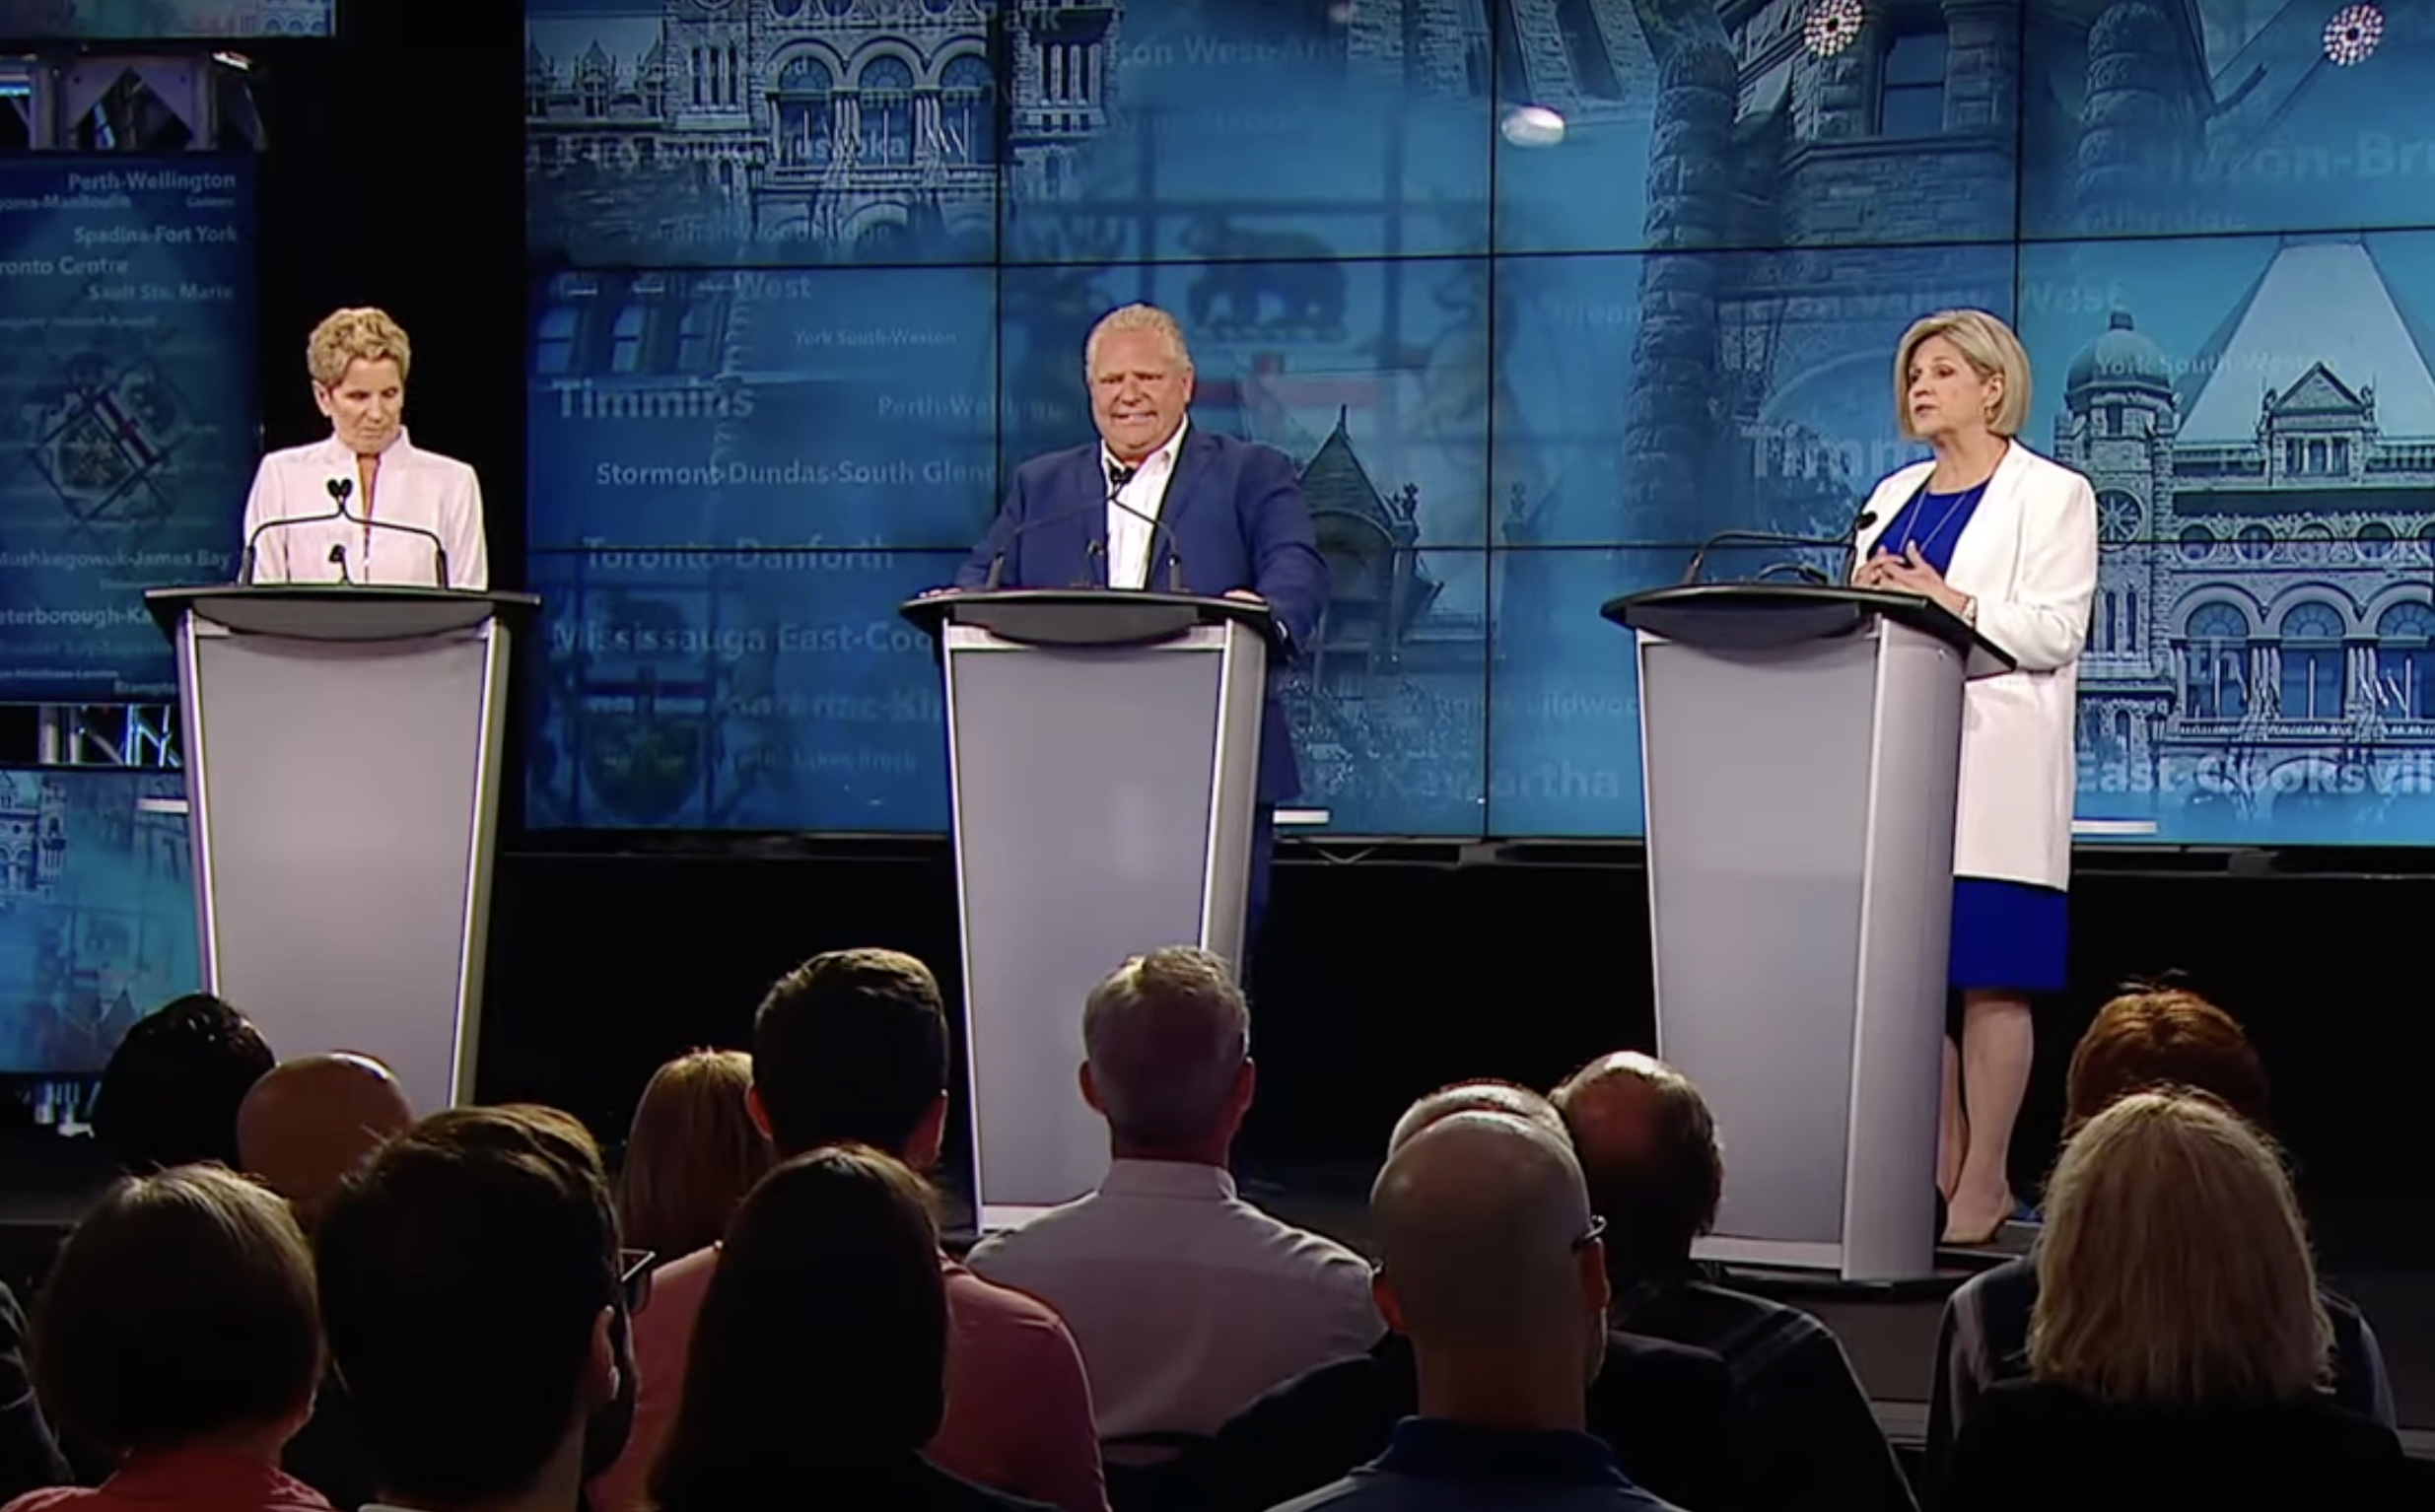 Davidson: Doug Ford brought Ontario to a childcare consensus